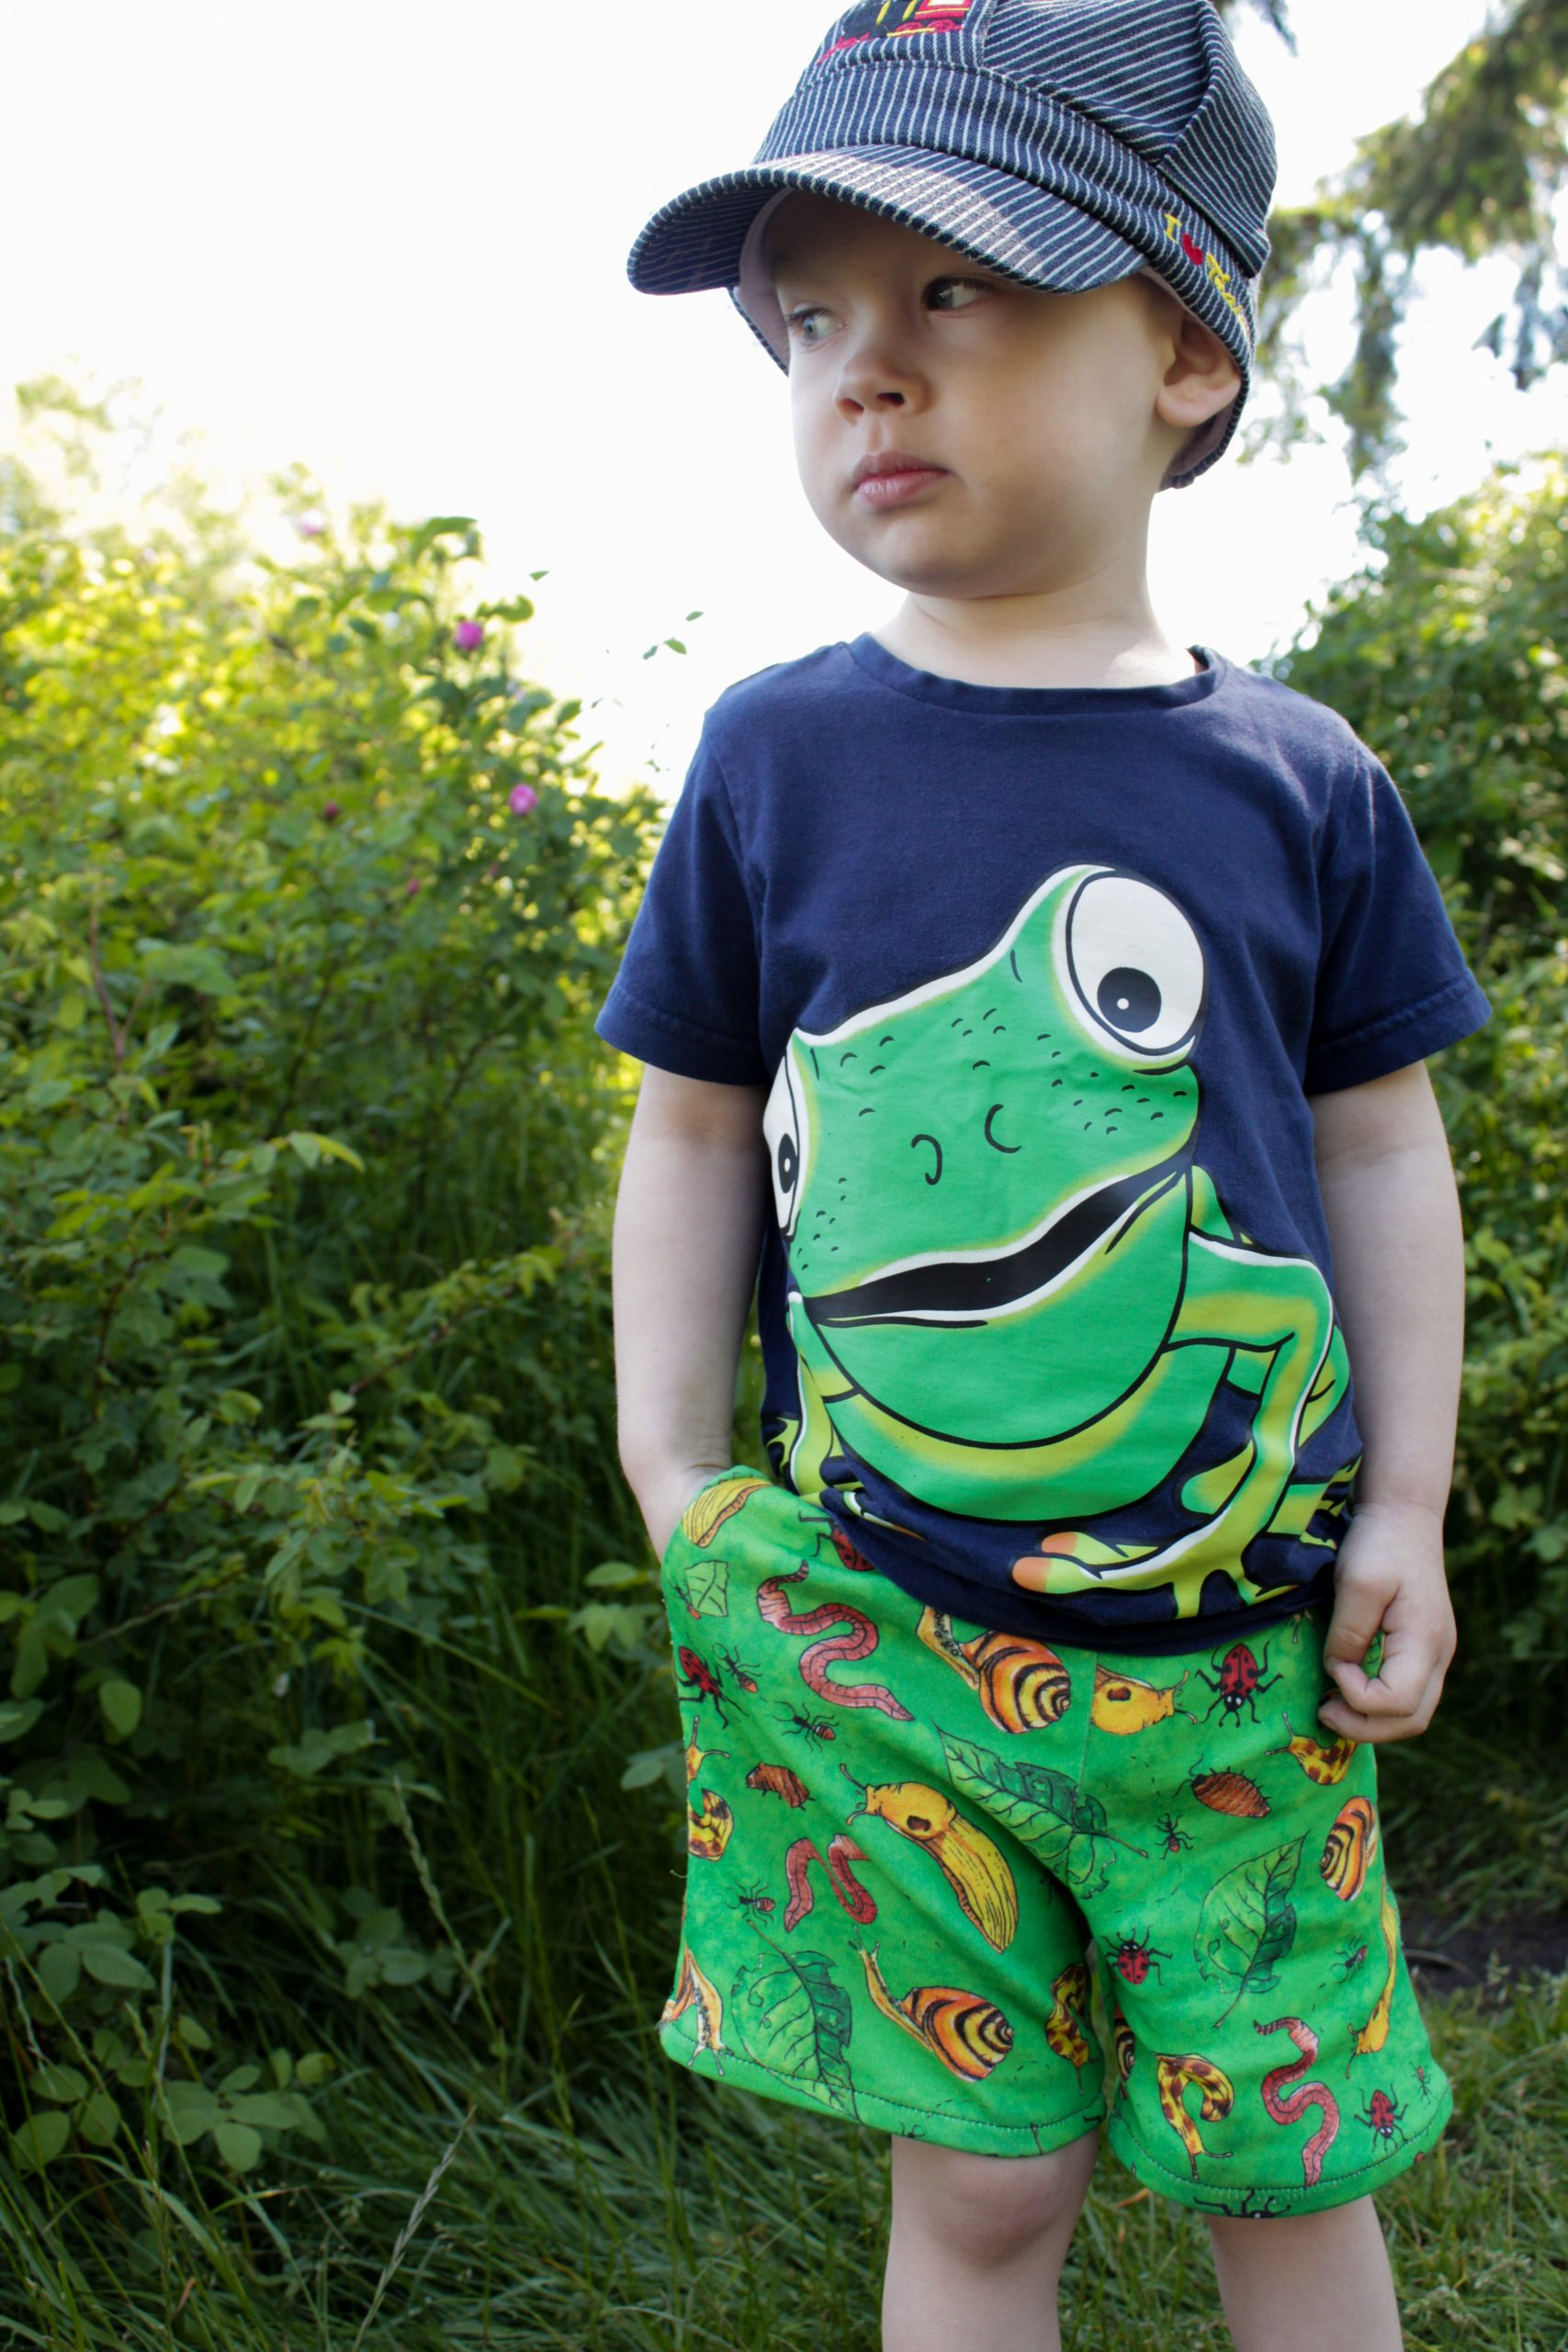 Diy toddler shorts, how to draft a simple pattern from a pair of shorts.